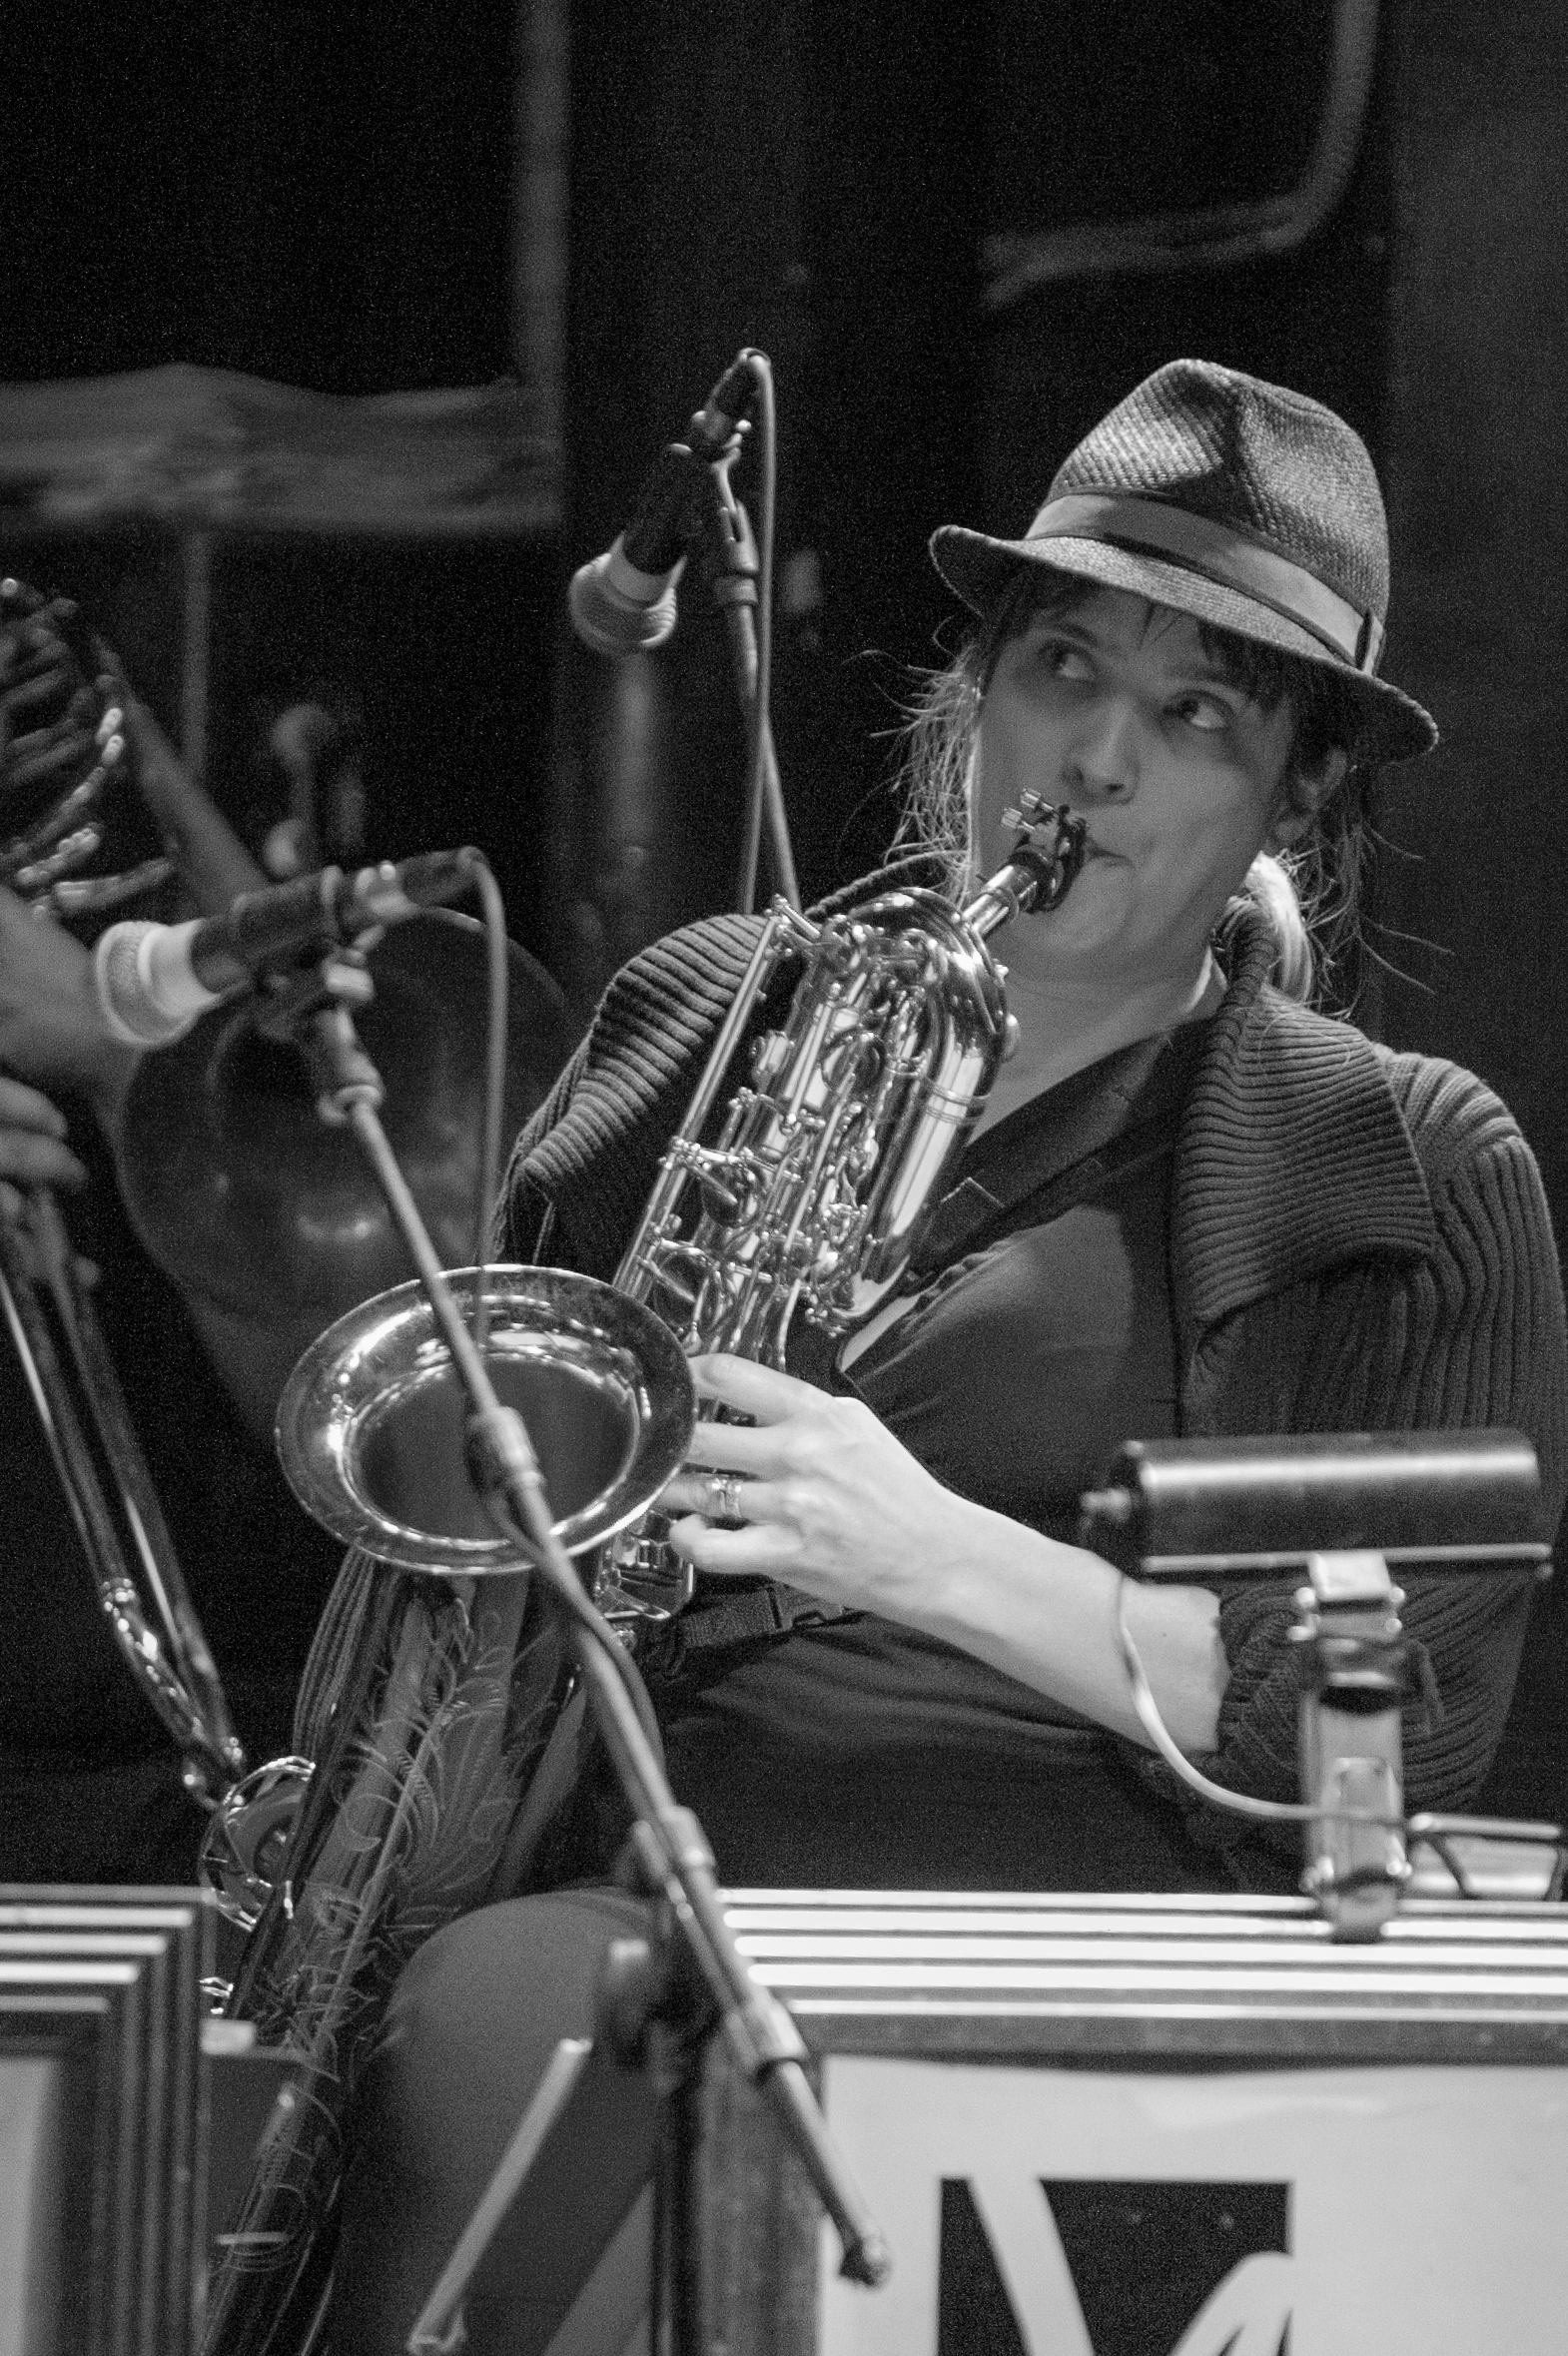 Performance picture in black and white of baritone saxophonist Melanie Howell Brooks